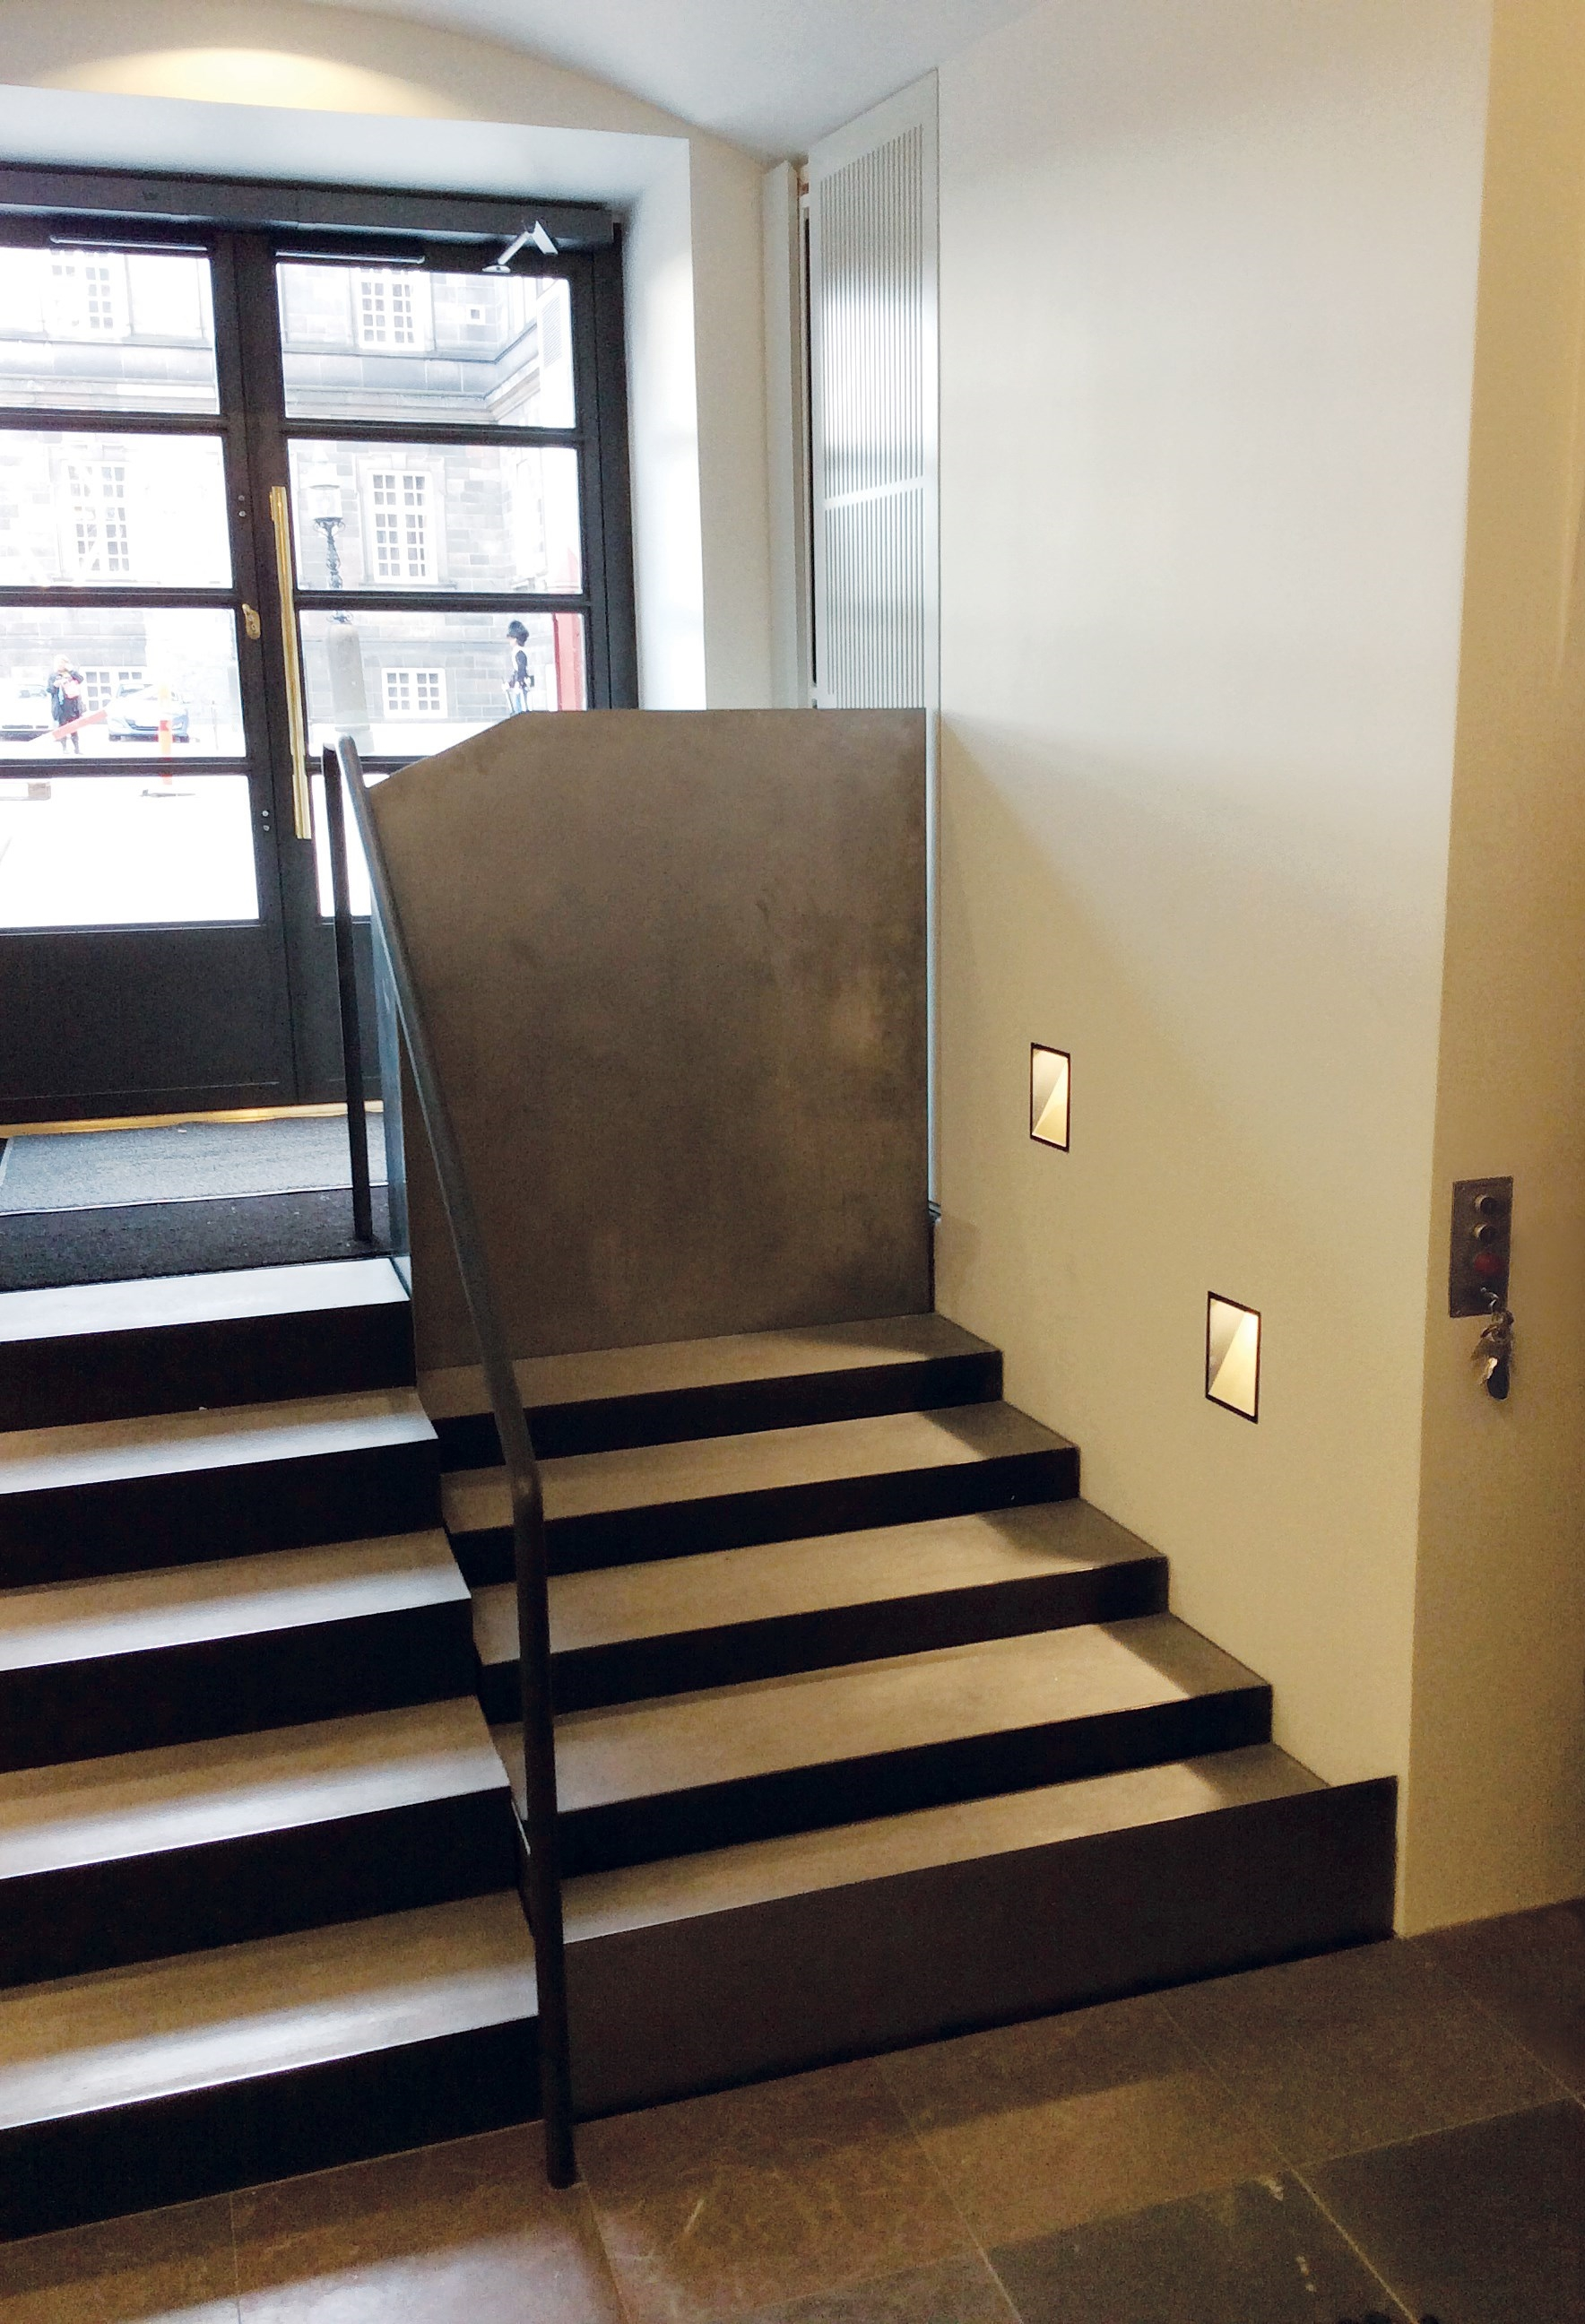 The steps transform into a platform lift - SLP model E - Specially designed to merge with its surroundings